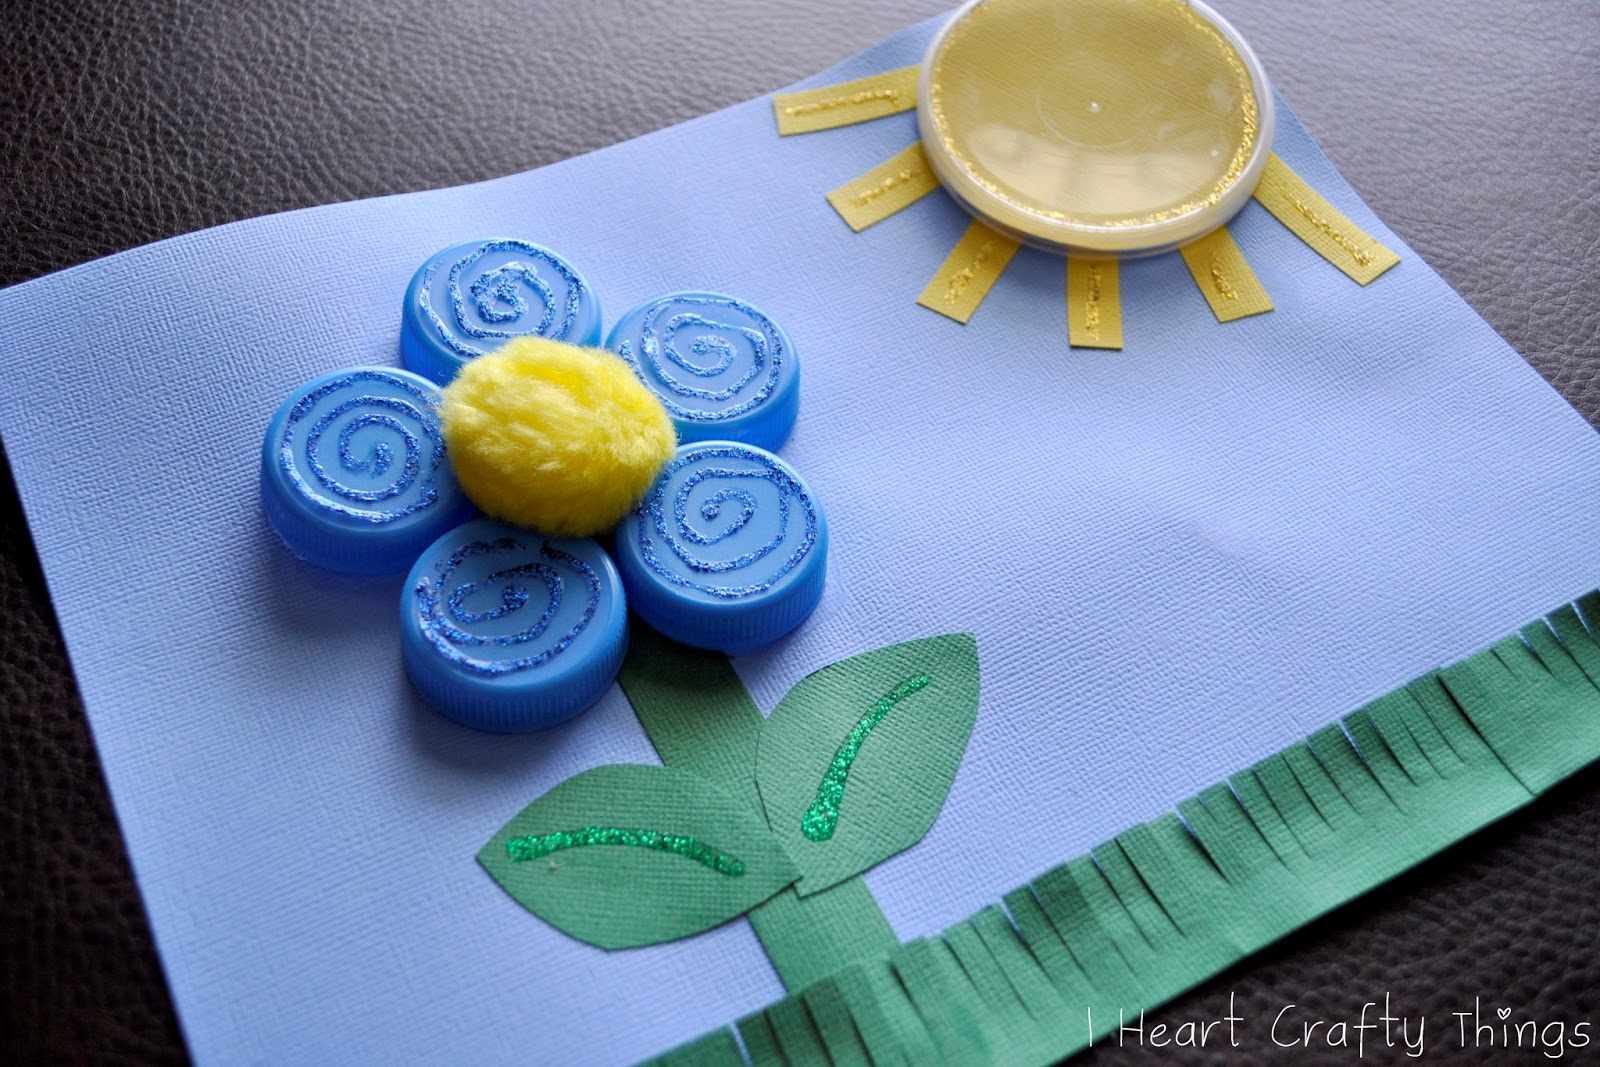 Bottle Cap Craft Ideas For Kids Part - 23: Have You Created Art With Bottle Caps? I Would Love To Hear Your Ideas!